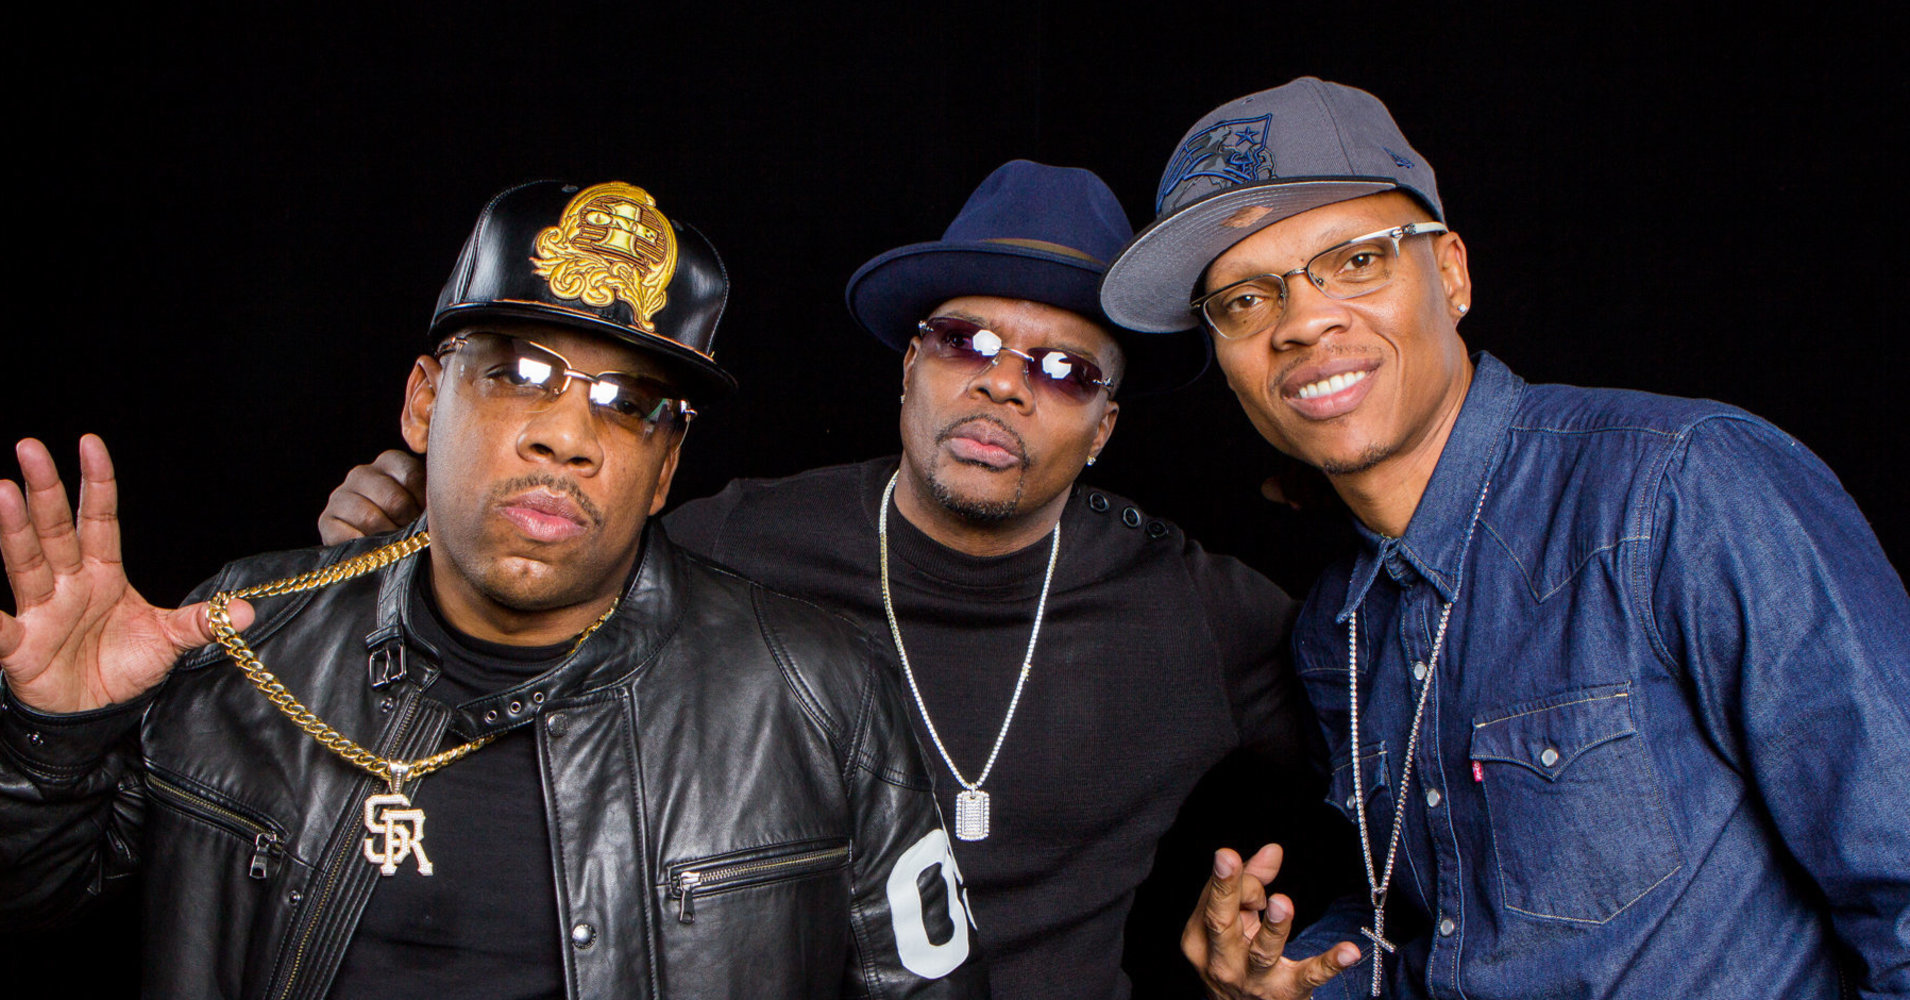 Bell Biv DeVoe to perform for their 30th anniversary at the Prudential  Center | New York Amsterdam News: The new Black view